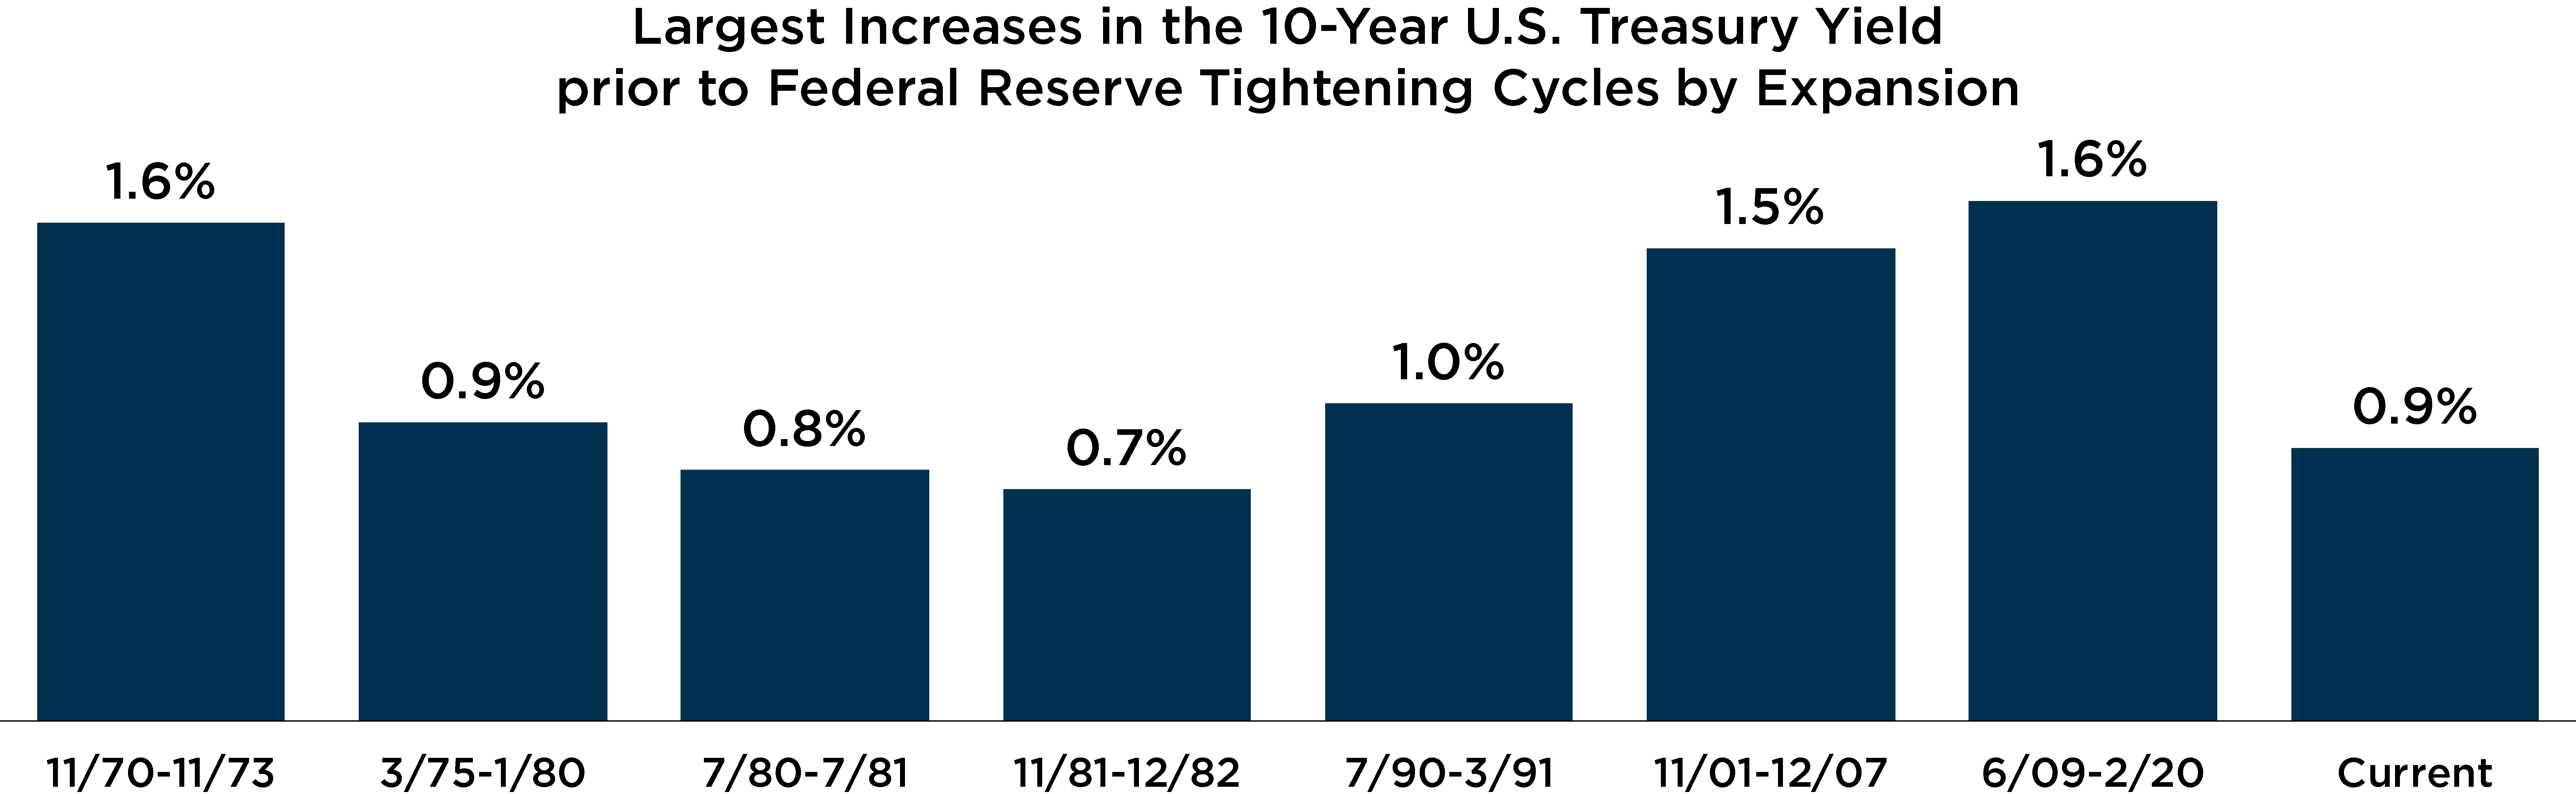 Graph depicting largest increases in the 10-year U.S. treasury yield prior to federal reserve tightening cycles by expansion